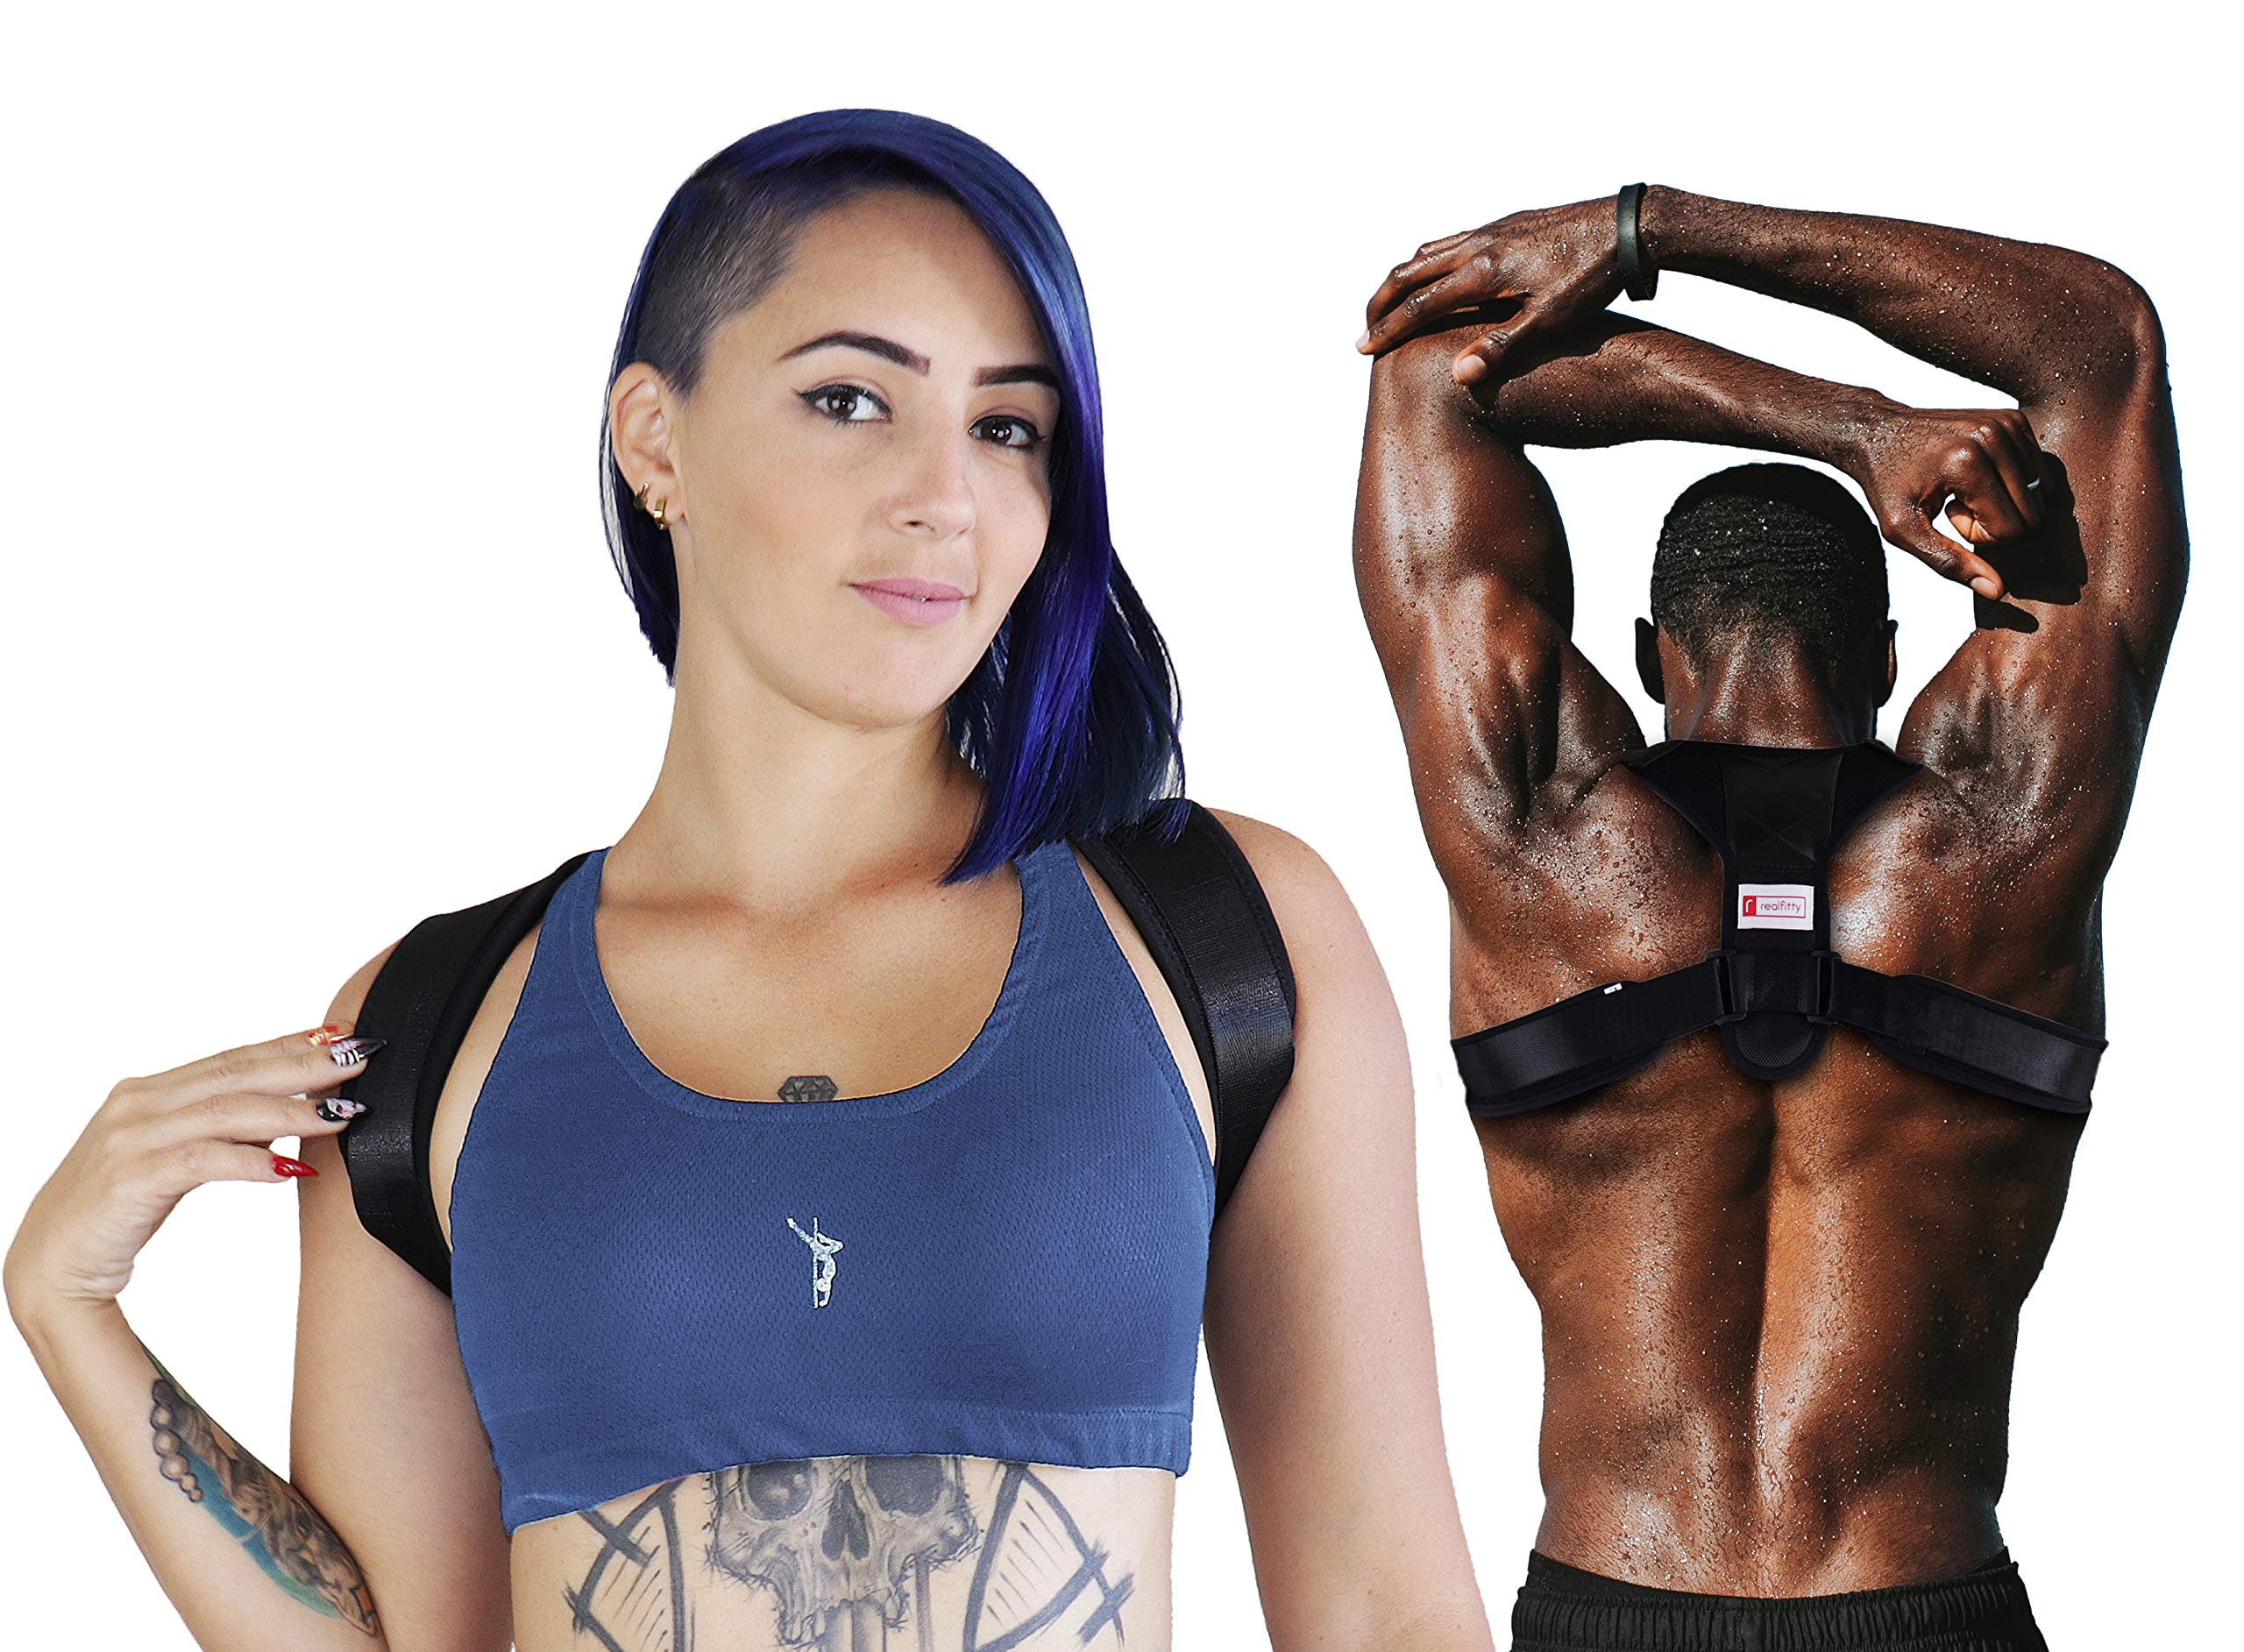 Premium Posture Corrector Best Back Brace for Women and Men | Fully adjustable Clavicle Support Back Straightener | Improve Posture and Relieve Pain for Shoulder Neck Back - FDA Approved